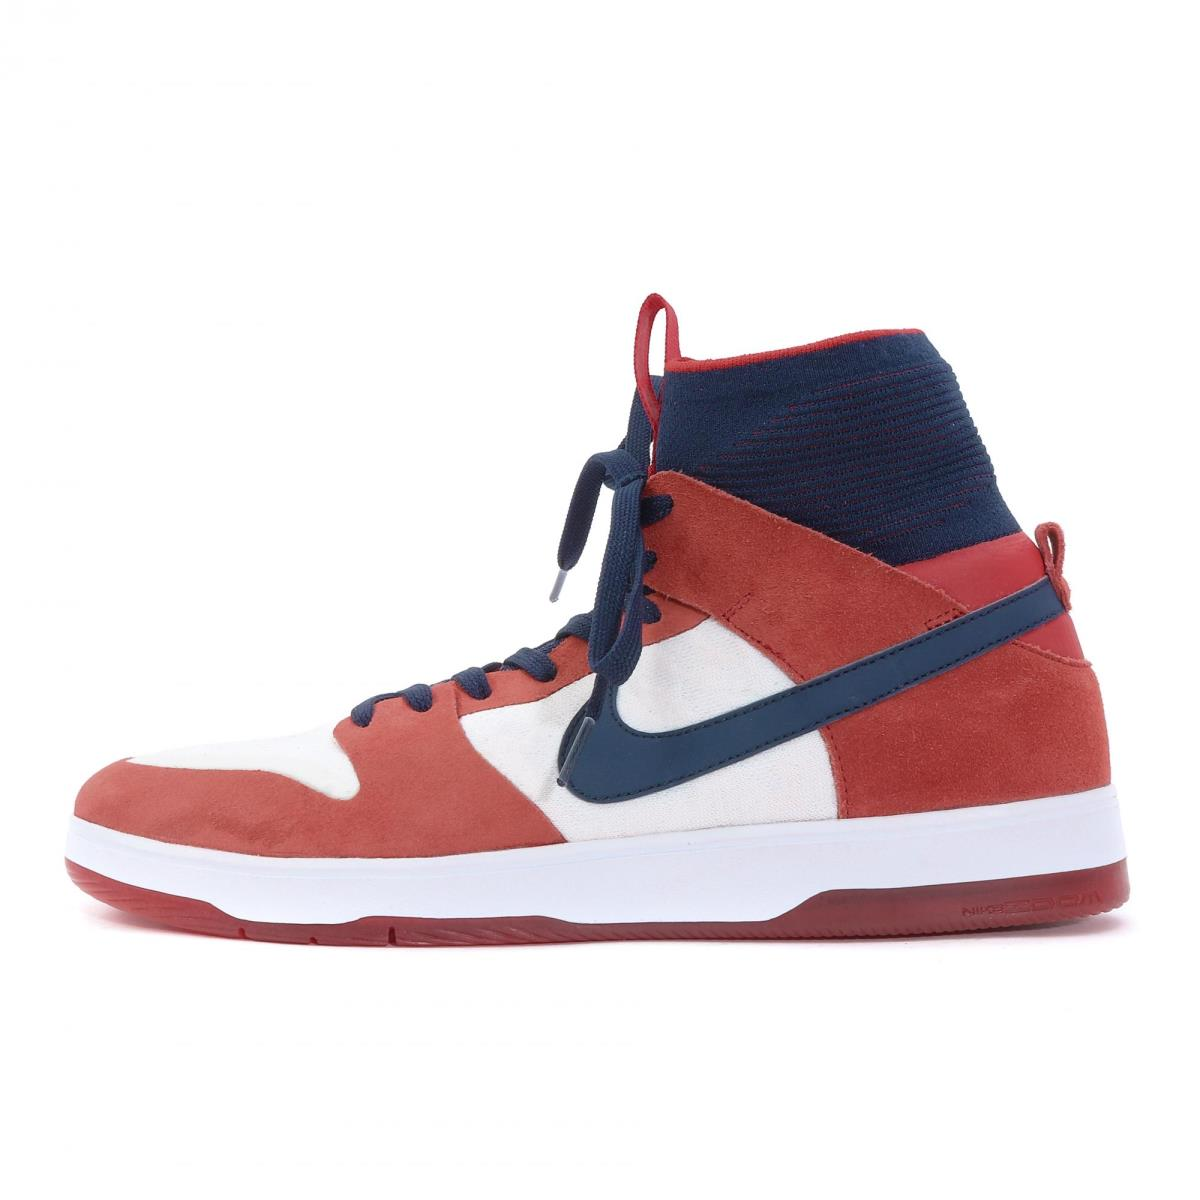 official photos 8cbac 3d19d NIKE (Nike) SB ZOOM DUNK HIGH ELITE (917,567-641) red X college navy  US10(28cm)